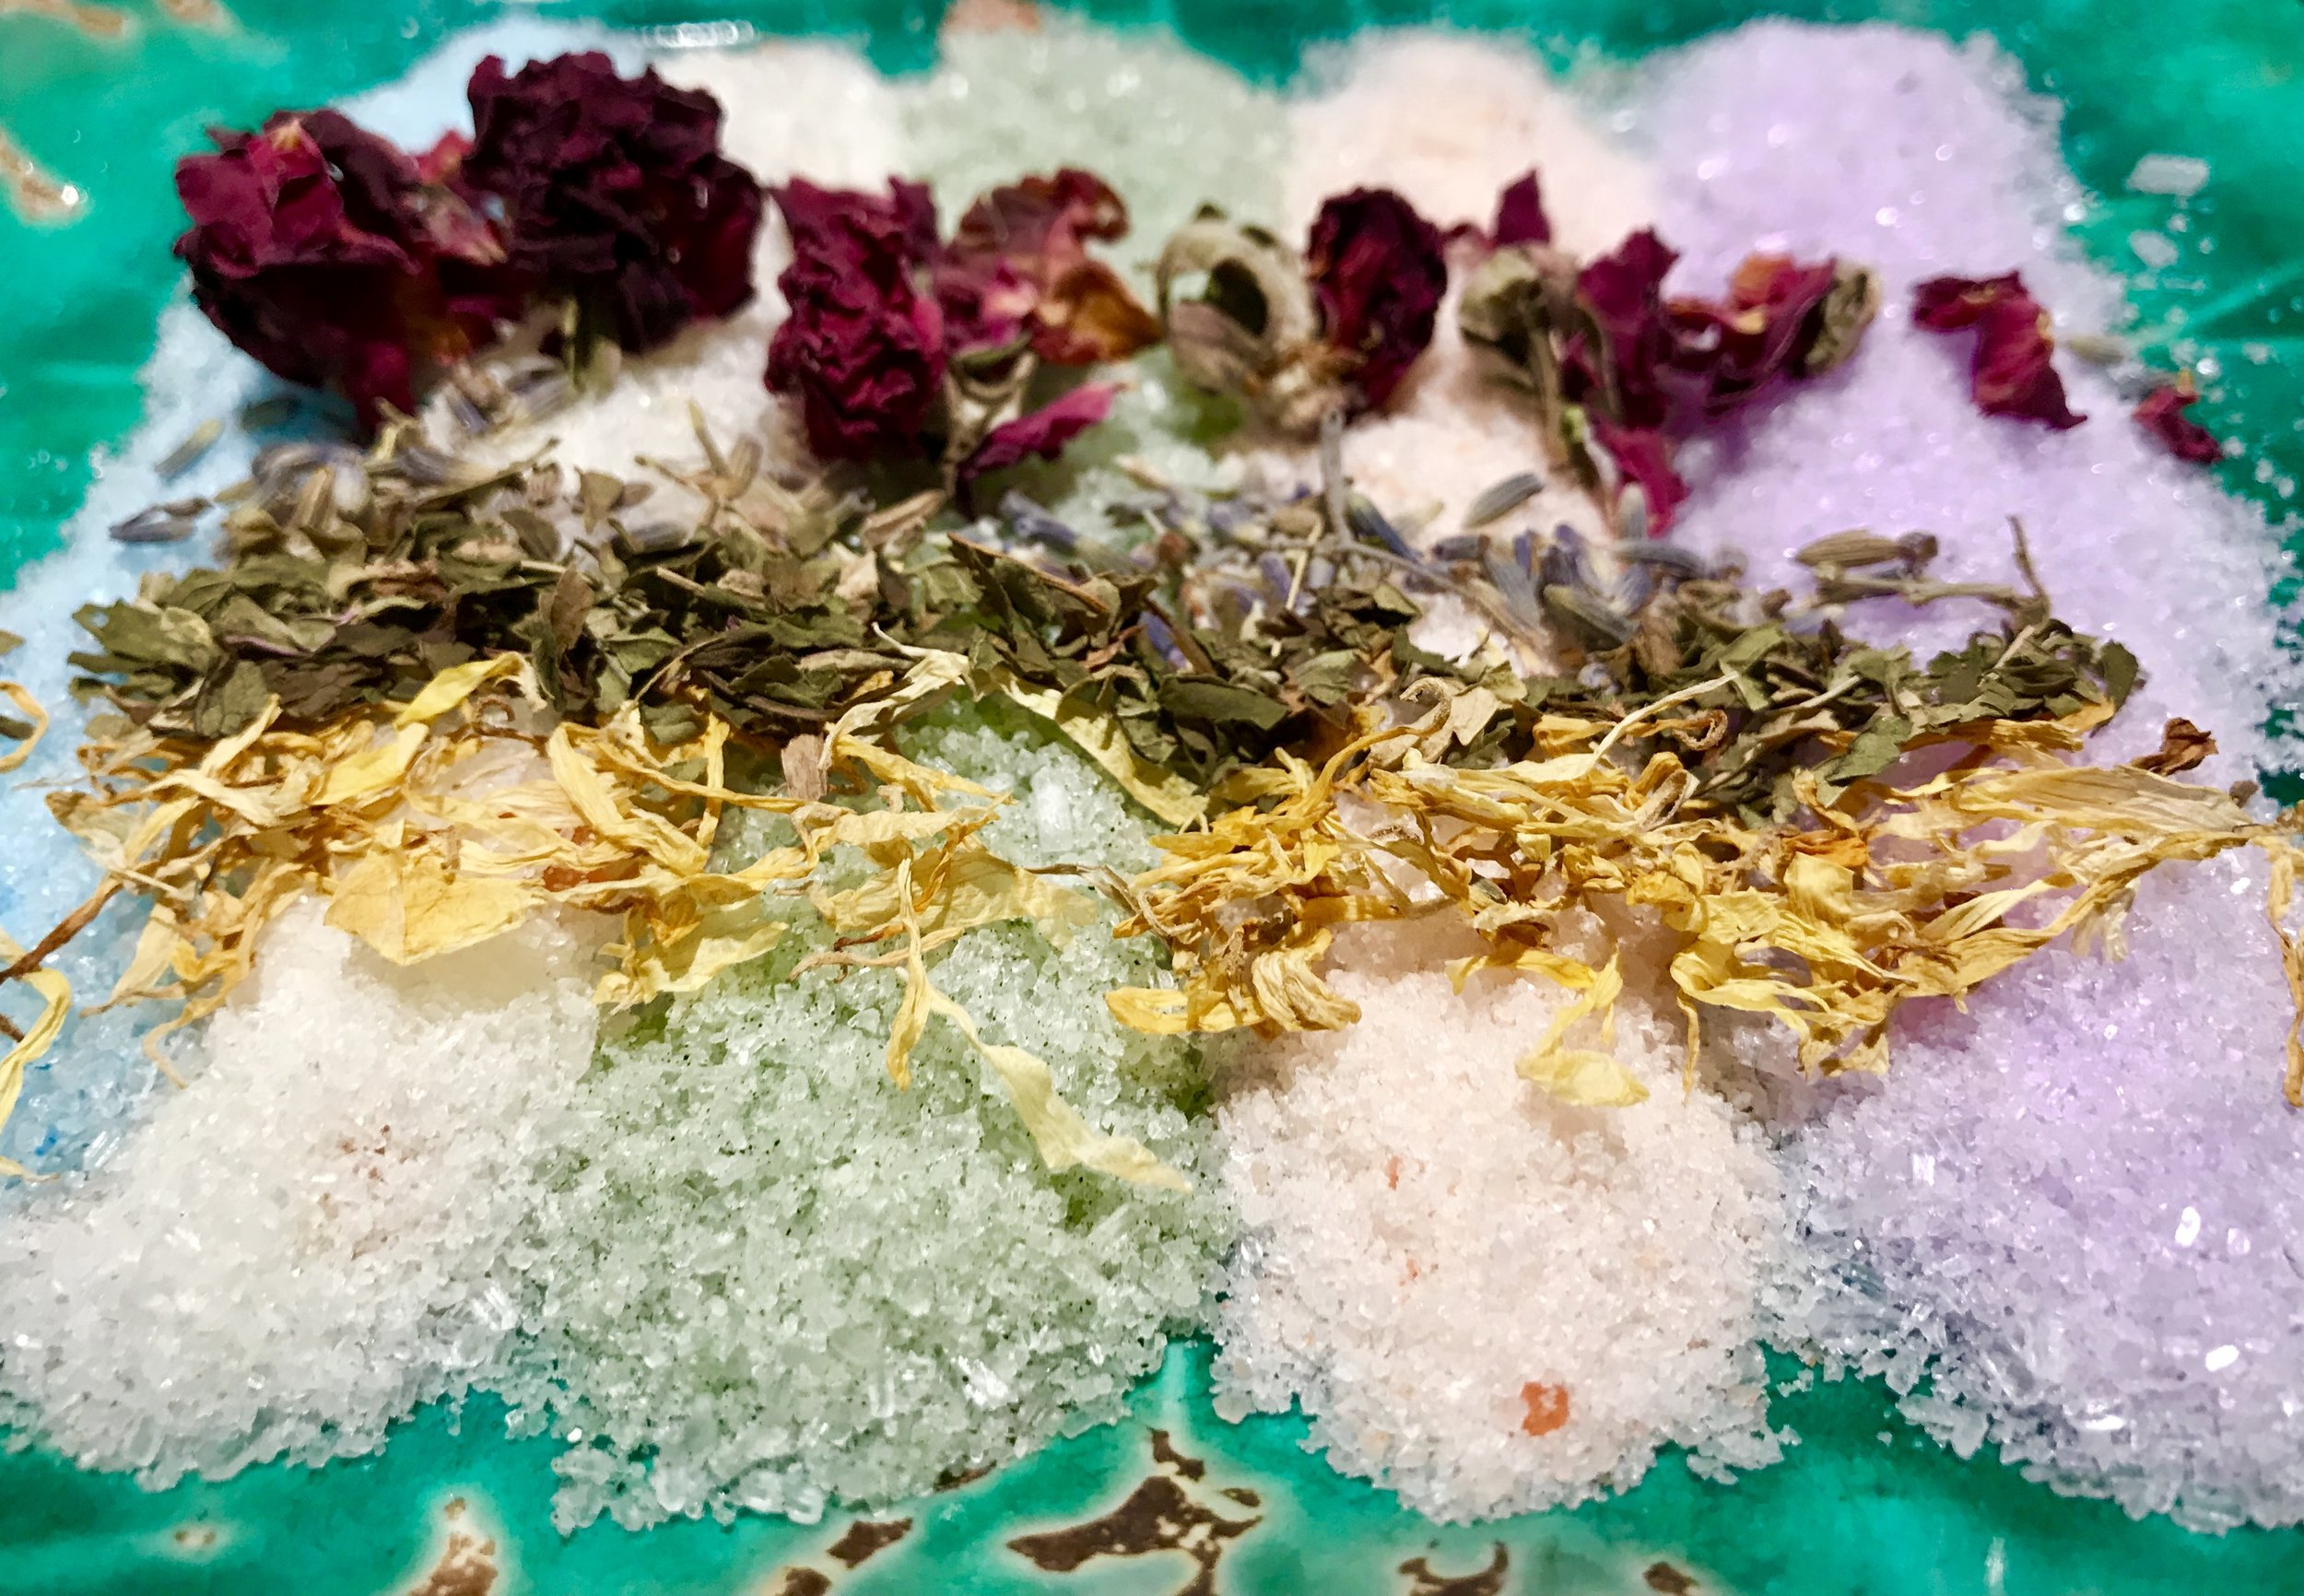 You wont believe how amazing our new bath salt bar looks now!